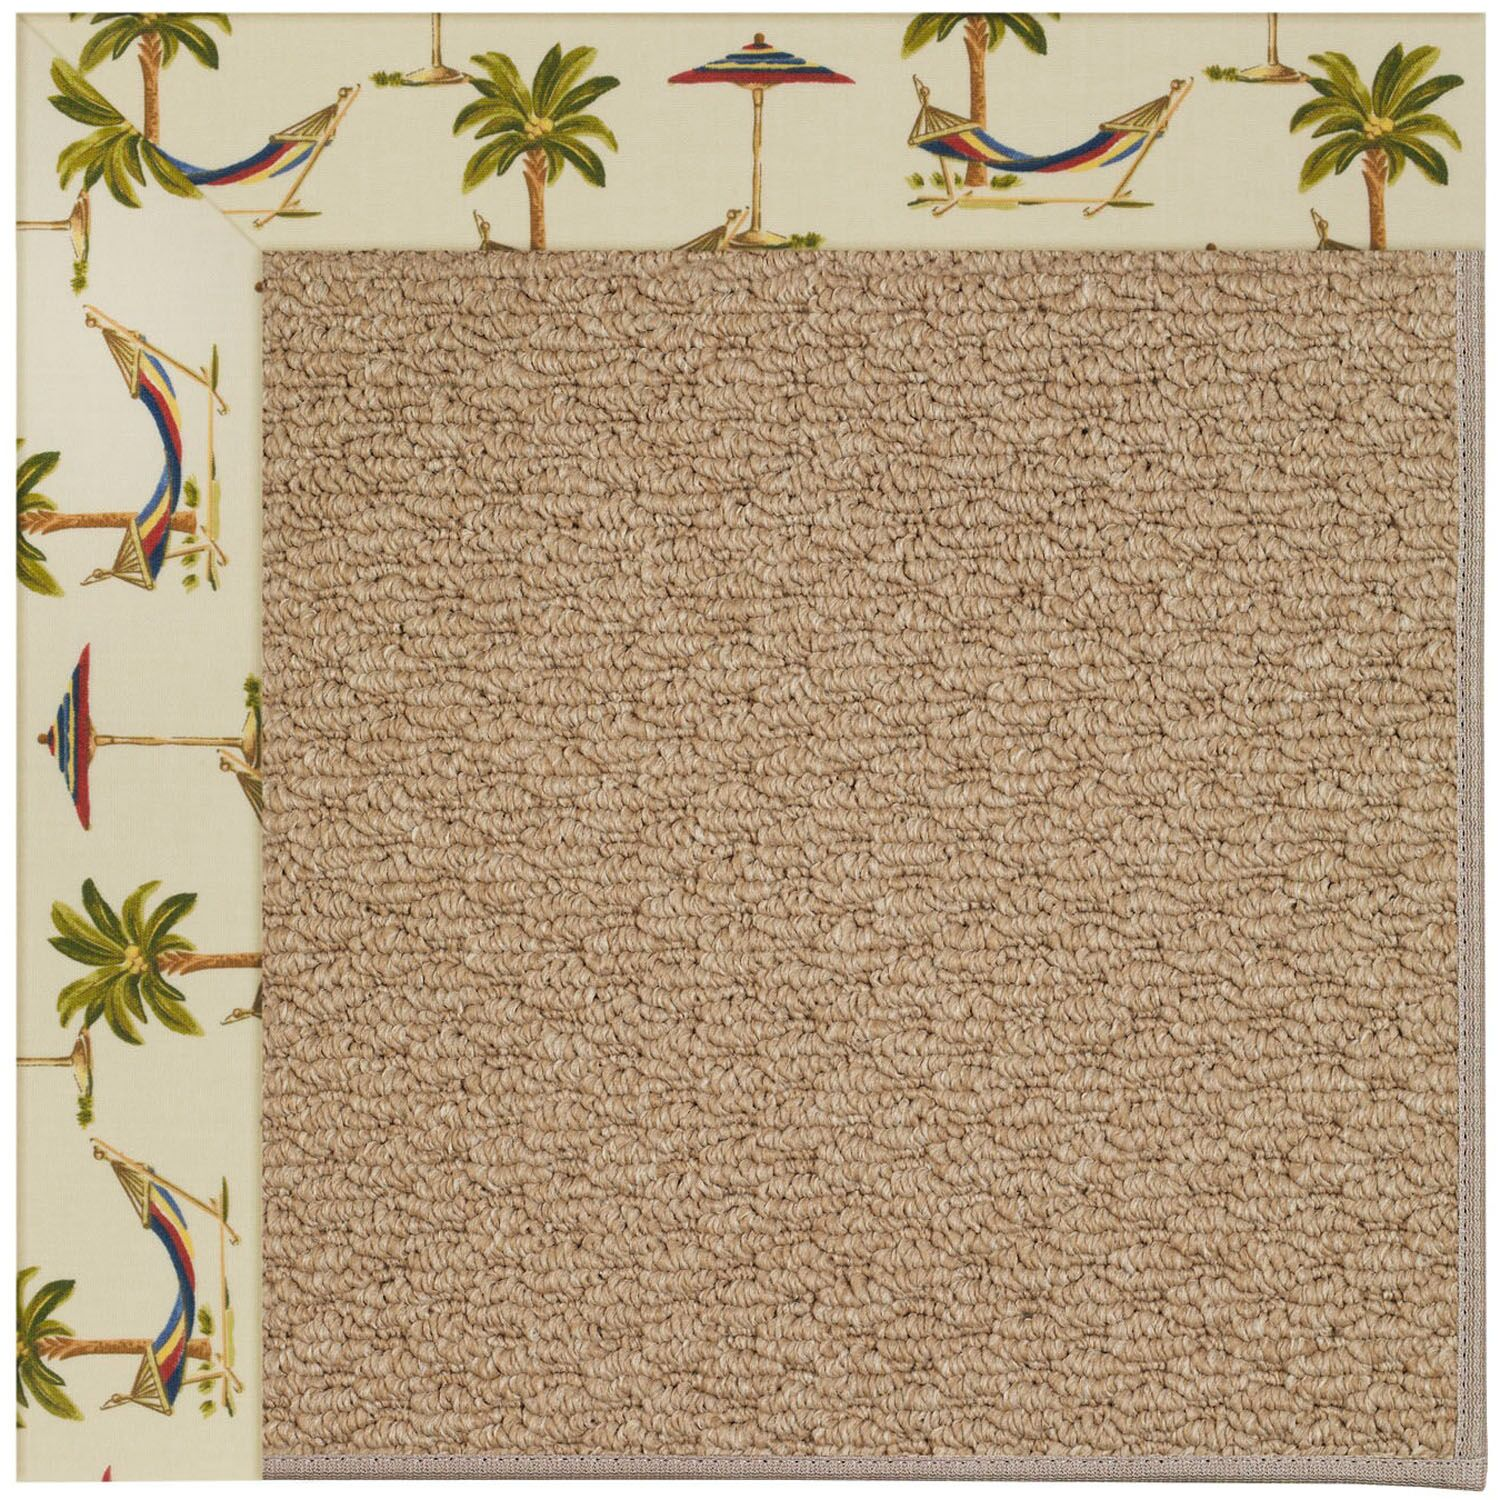 Lisle Machine Tufted Beige/Brown Indoor/Outdoor Area Rug Rug Size: Rectangle 3' x 5'